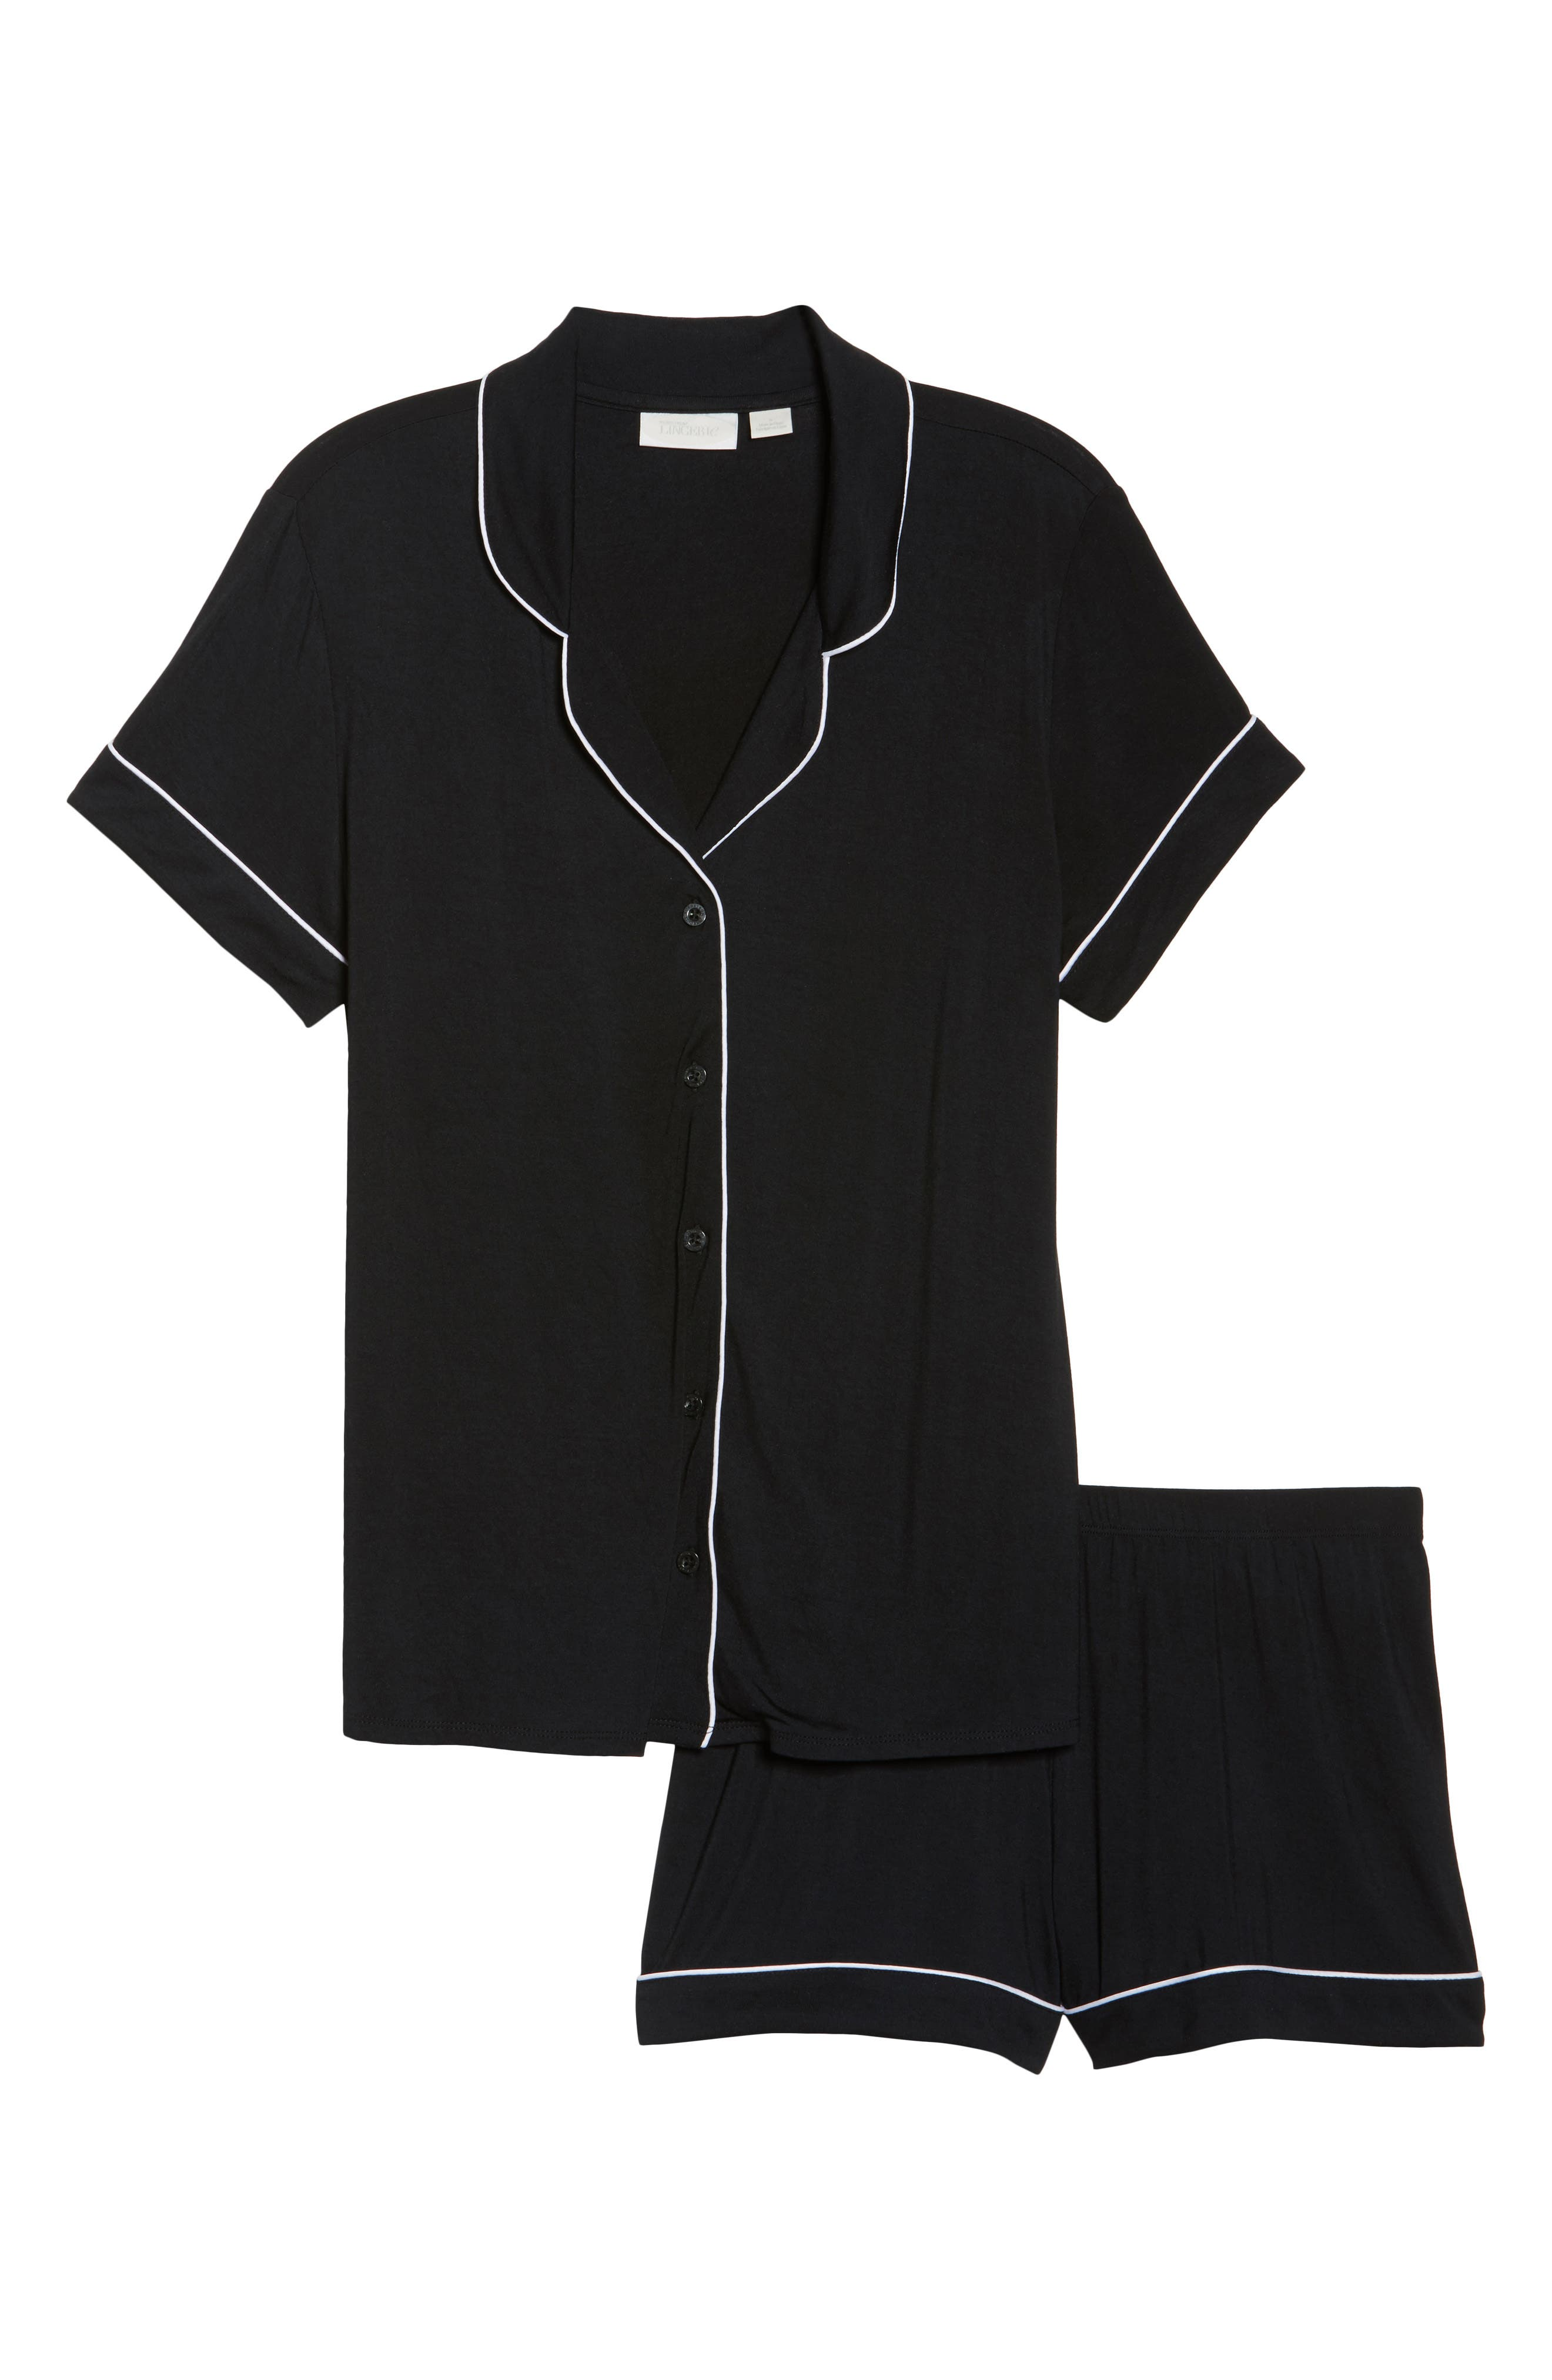 NORDSTROM LINGERIE Moonlight Short Pajamas, Main, color, BLACK